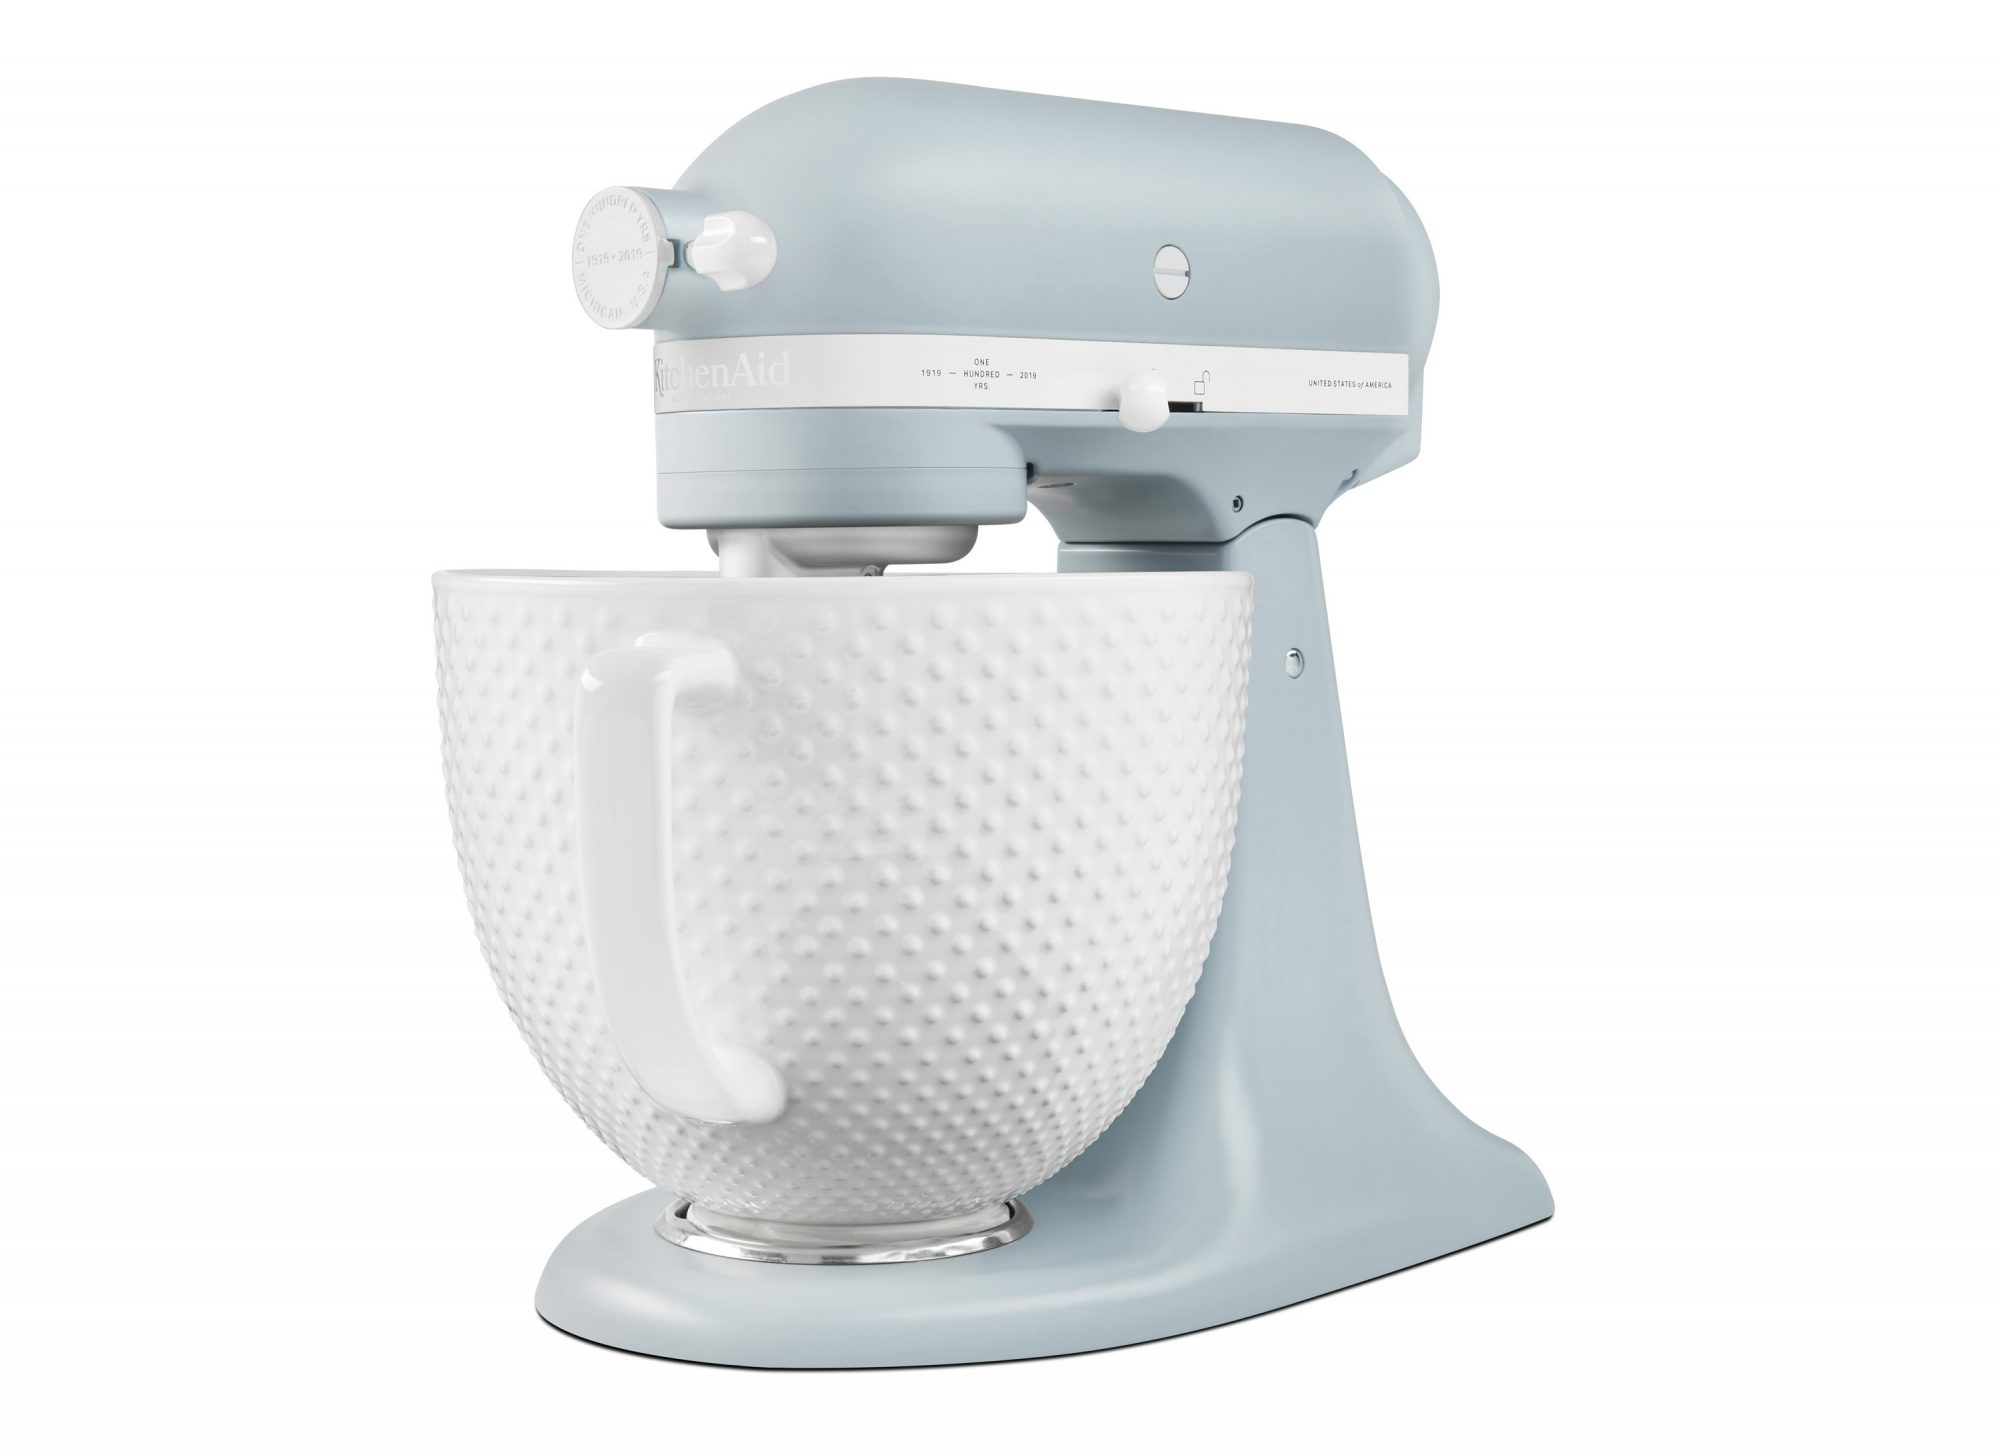 Kitchenaid Edition Stand Mixer Major Vintage Vibes Misty Blue Hobnail